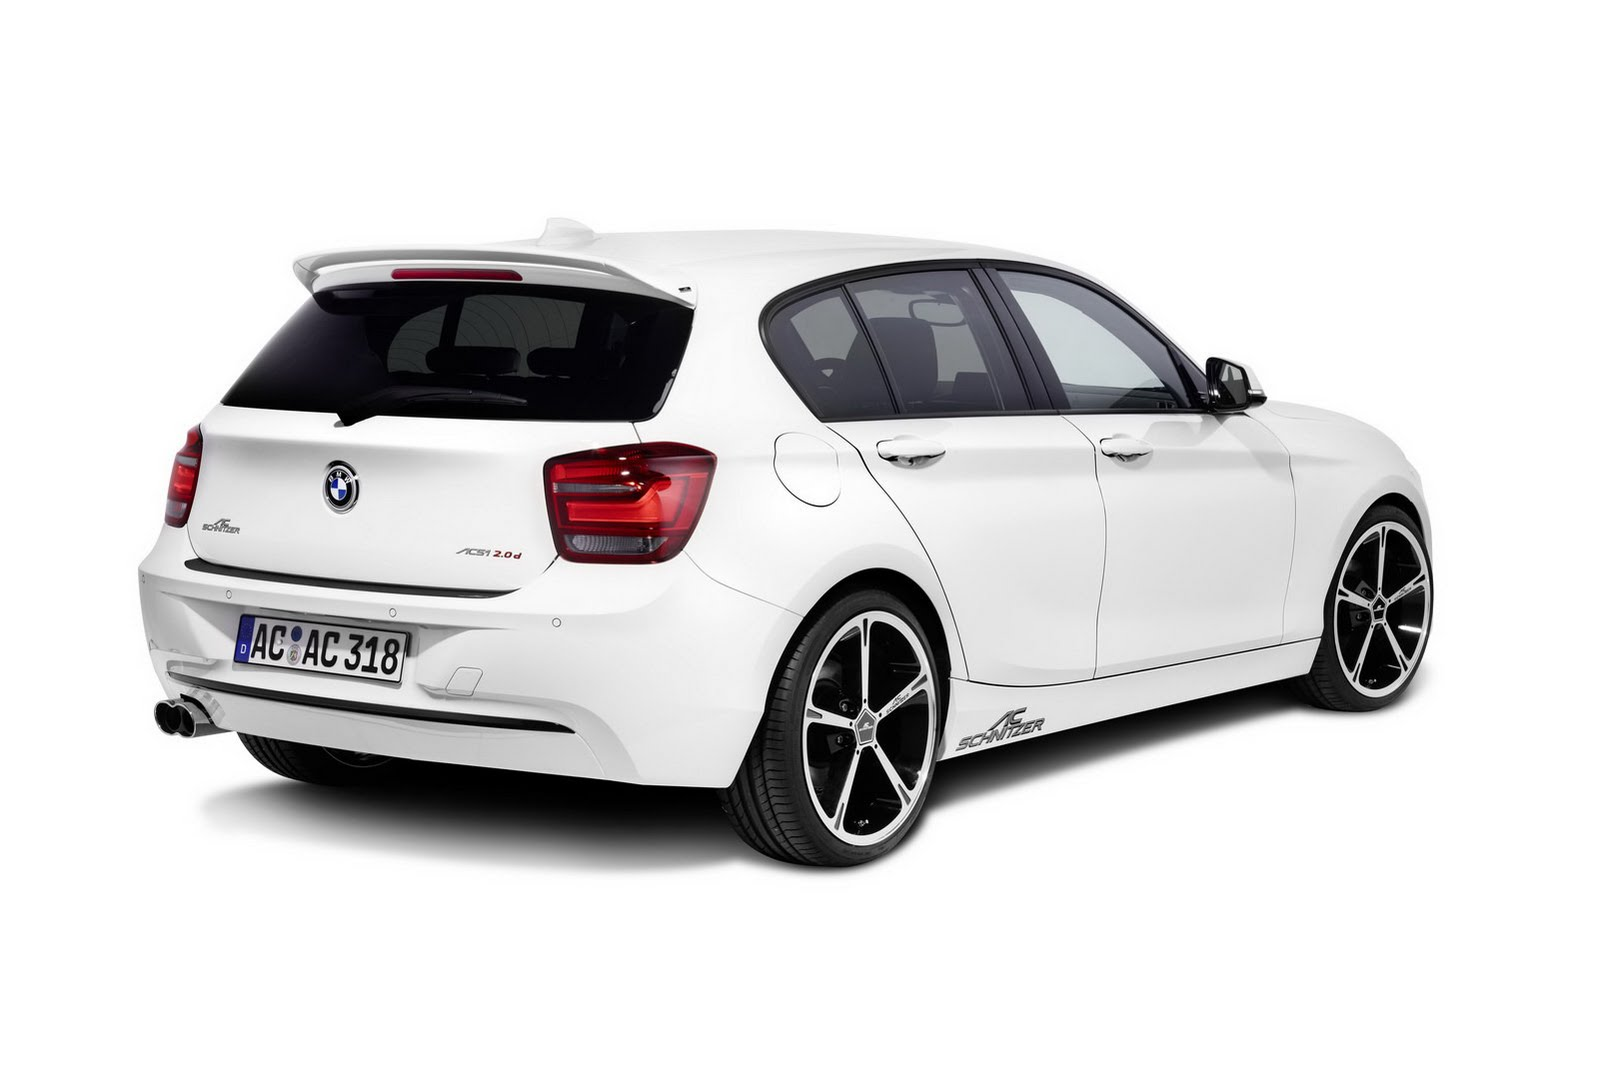 bmw 1 series available in ac schnitzer flavor bmw car tuning. Black Bedroom Furniture Sets. Home Design Ideas